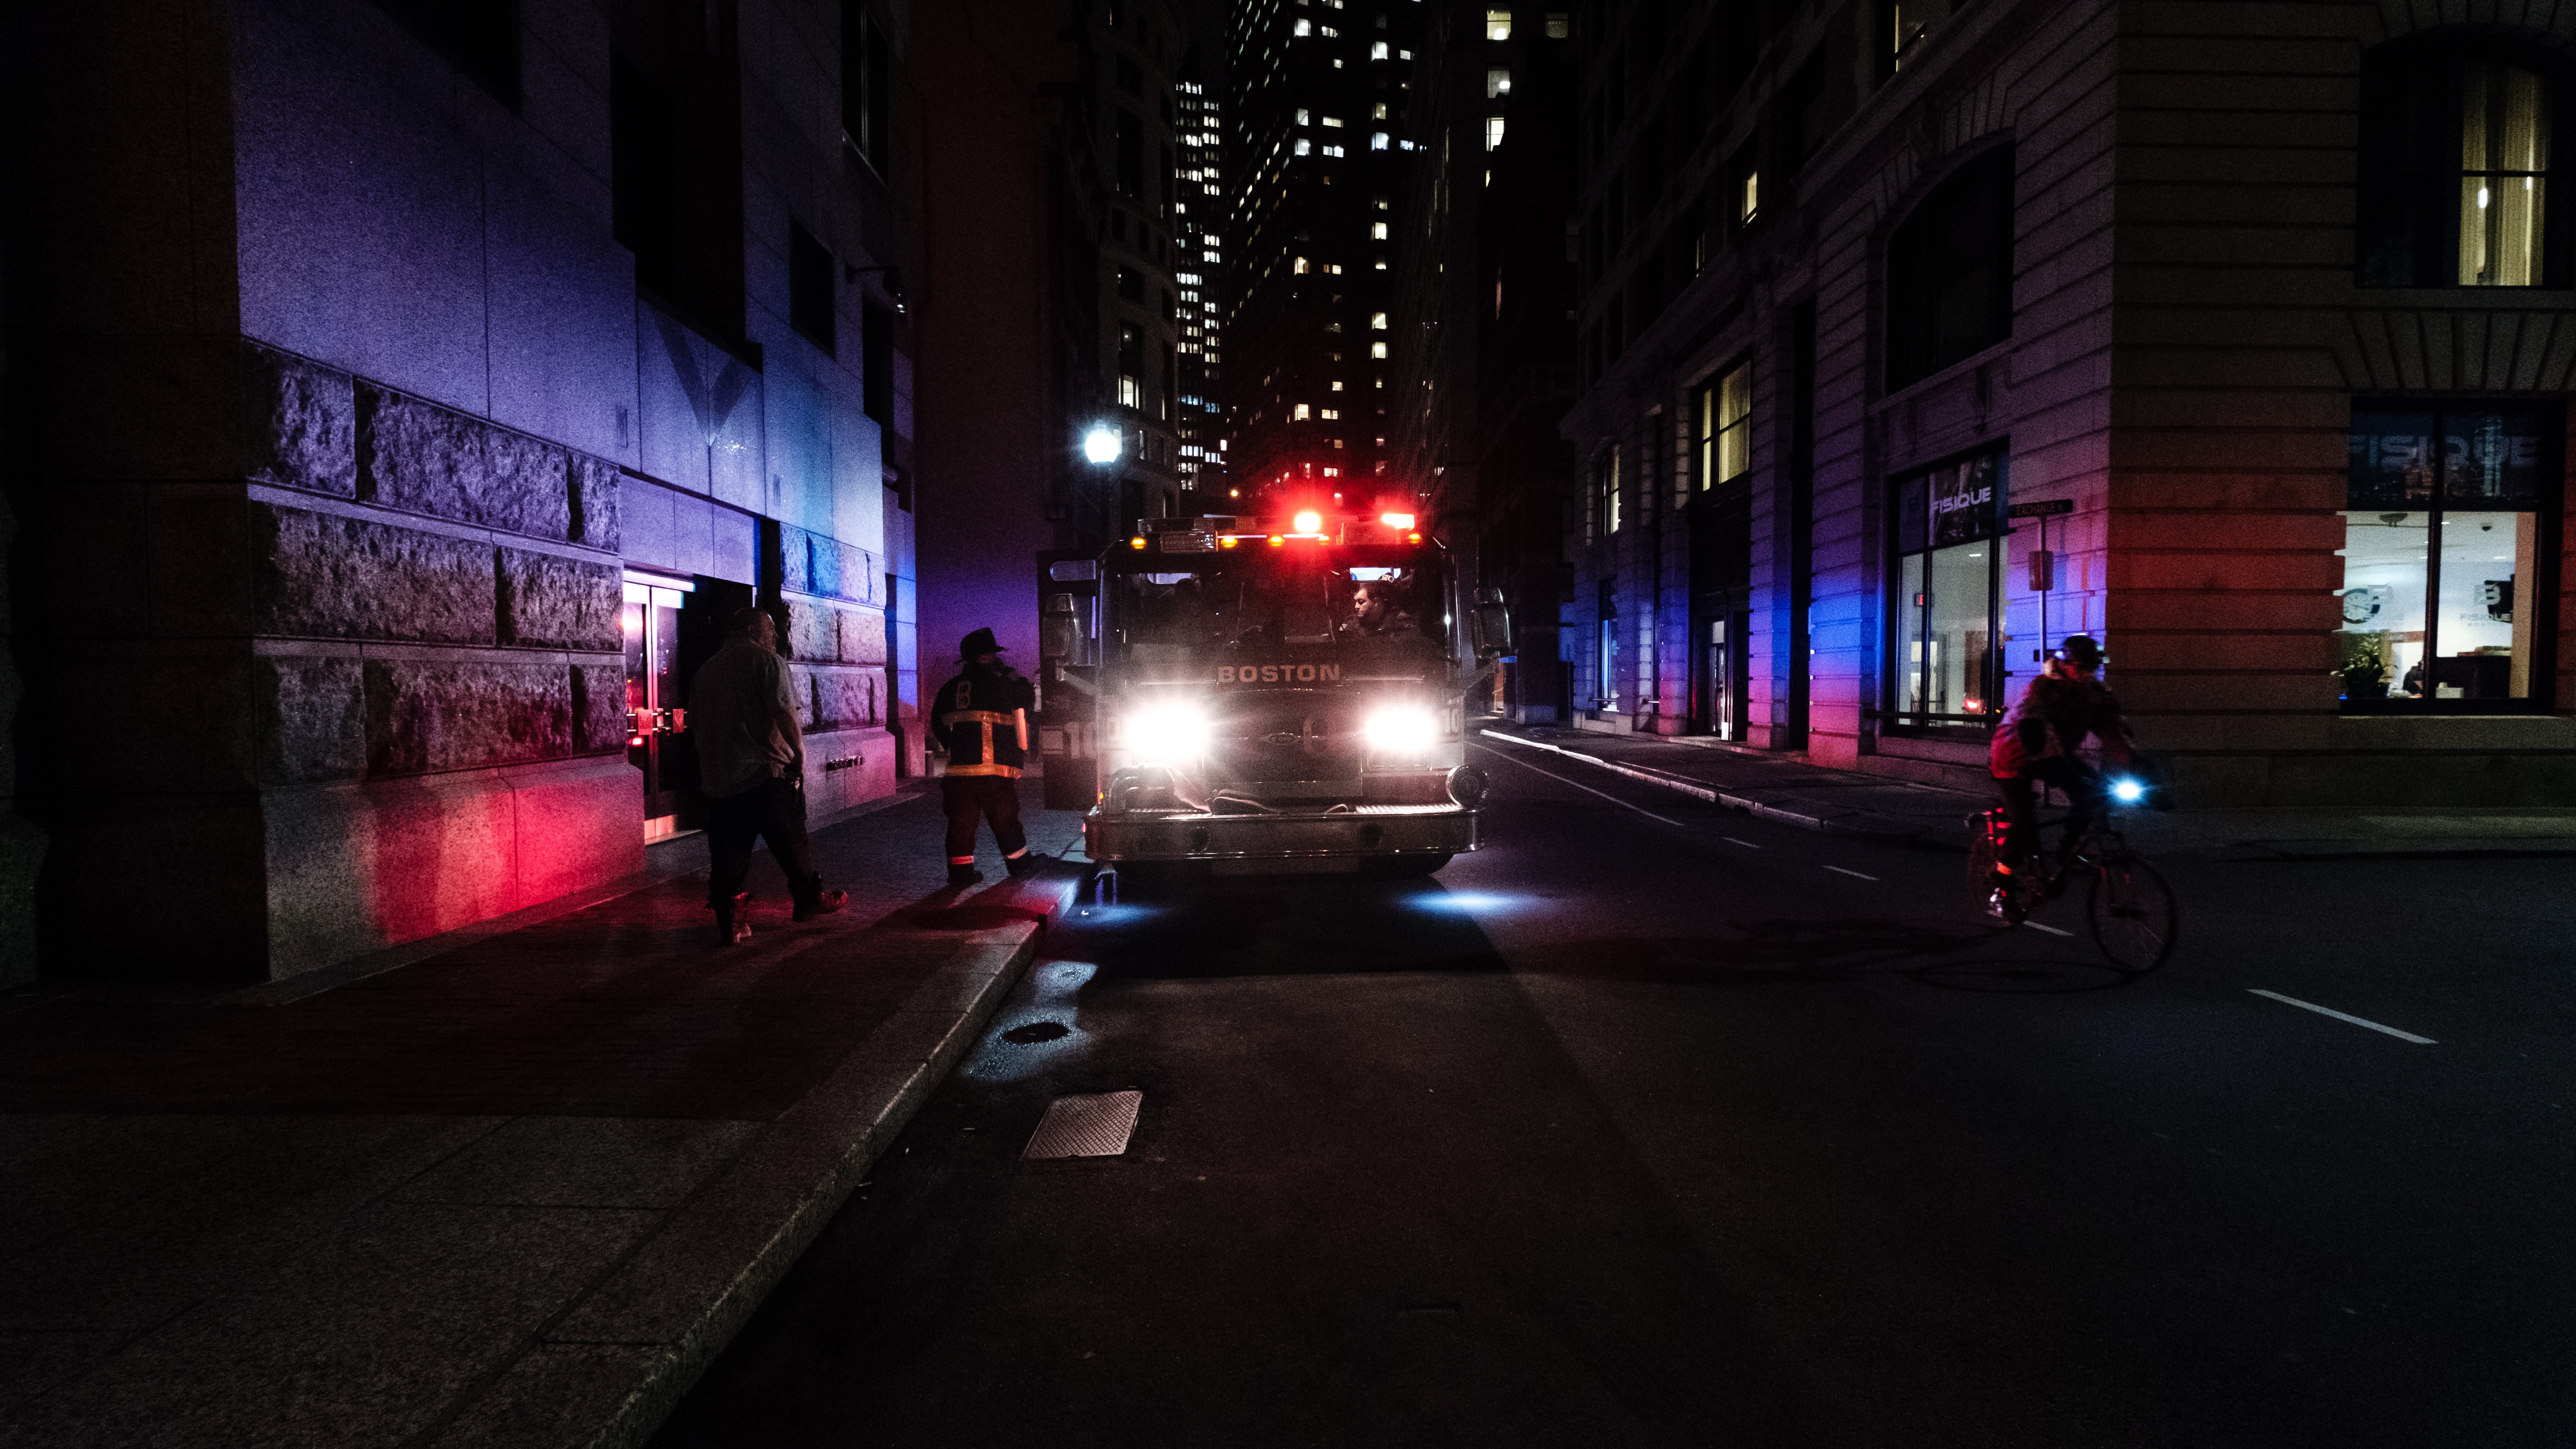 Red emergency lights of Boston firefighter truck parked on a street at night